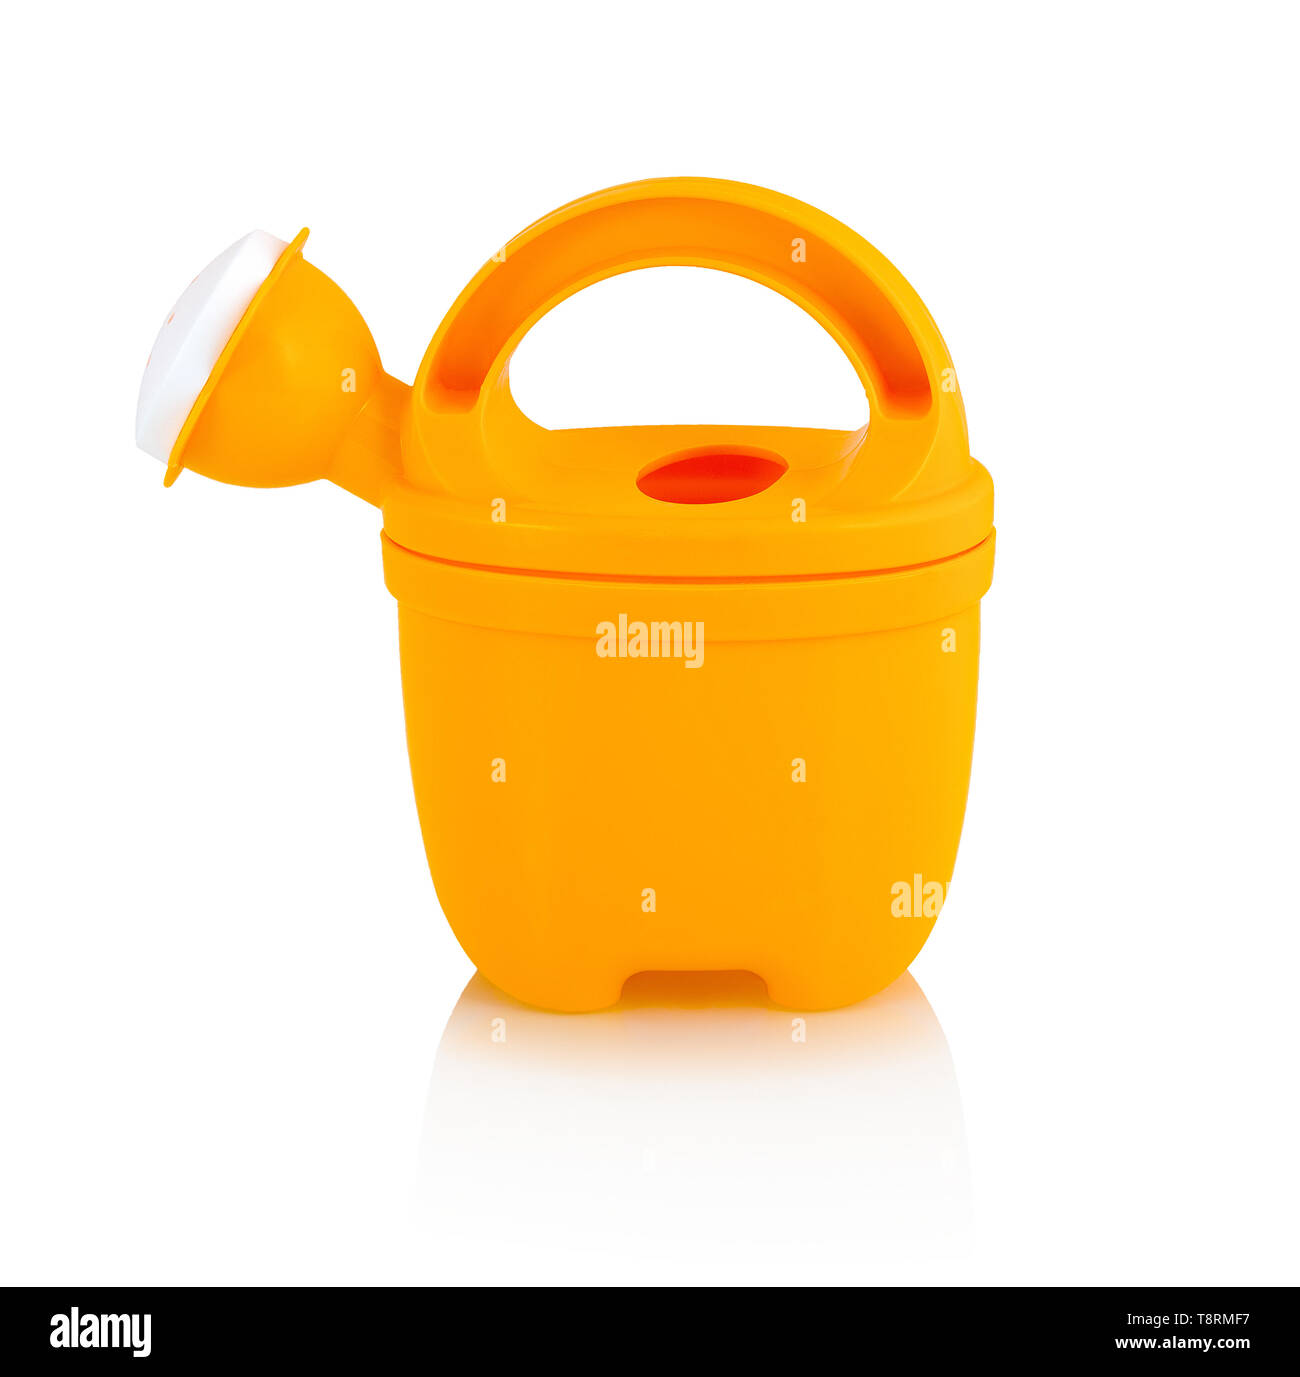 Children's small plastic watering can isolated on the white background with shadow reflection. Watering-can toy for watering plants and flowers, for p - Stock Image